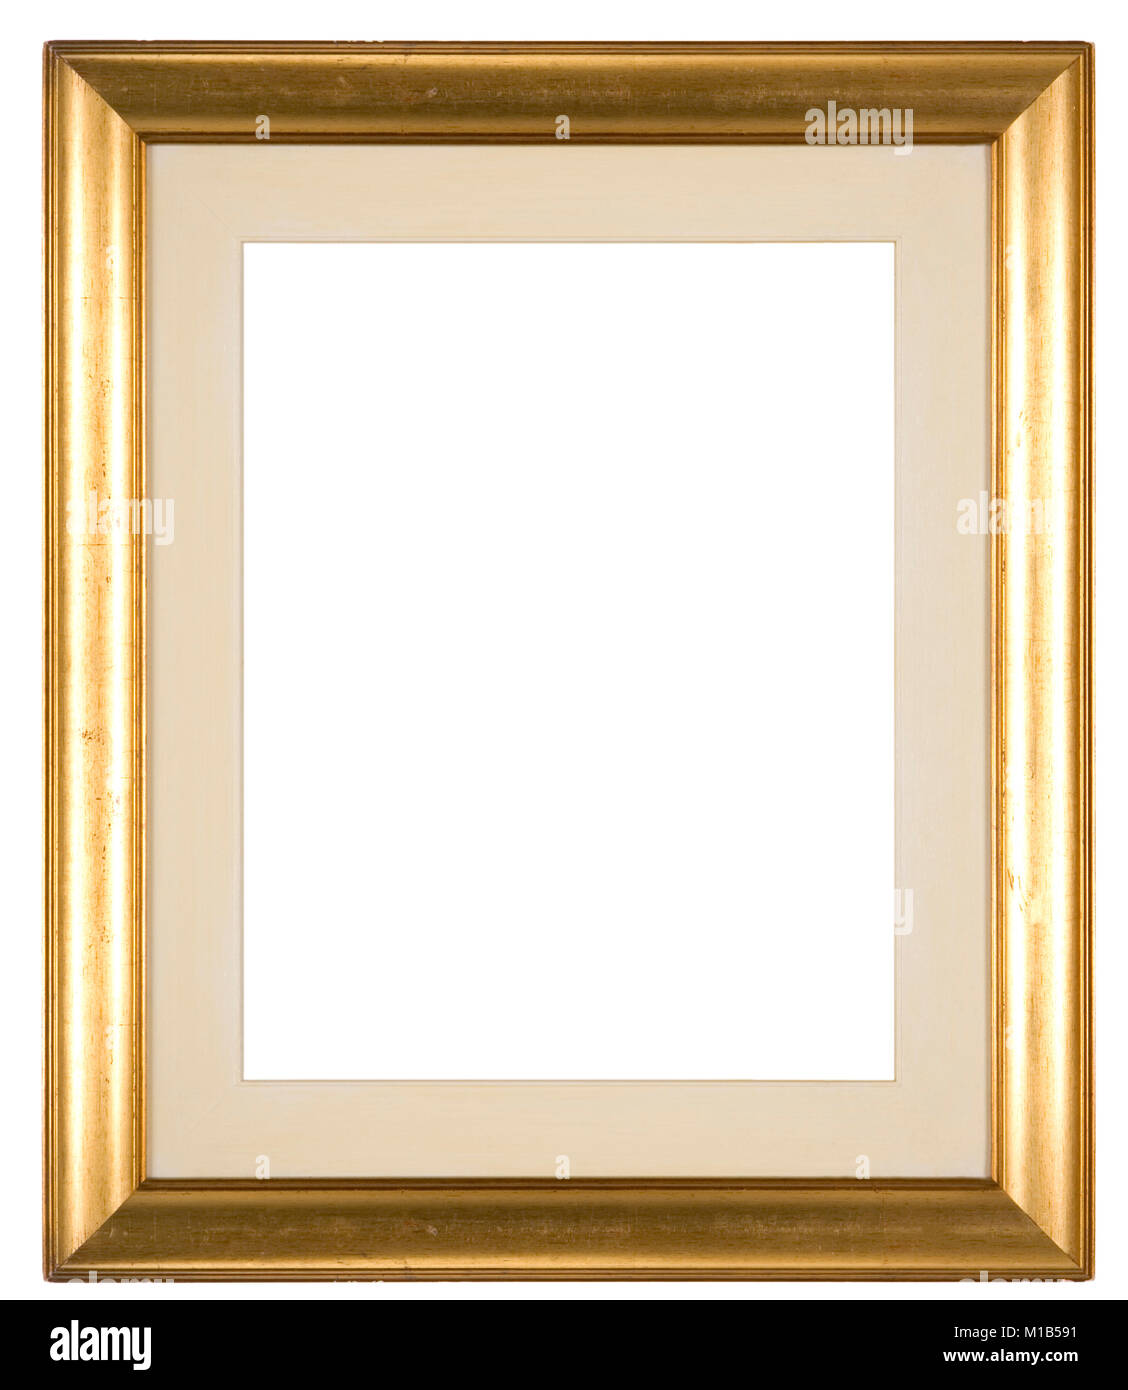 Outstanding Distressed Gold Frame Picture Collection - Framed Art ...